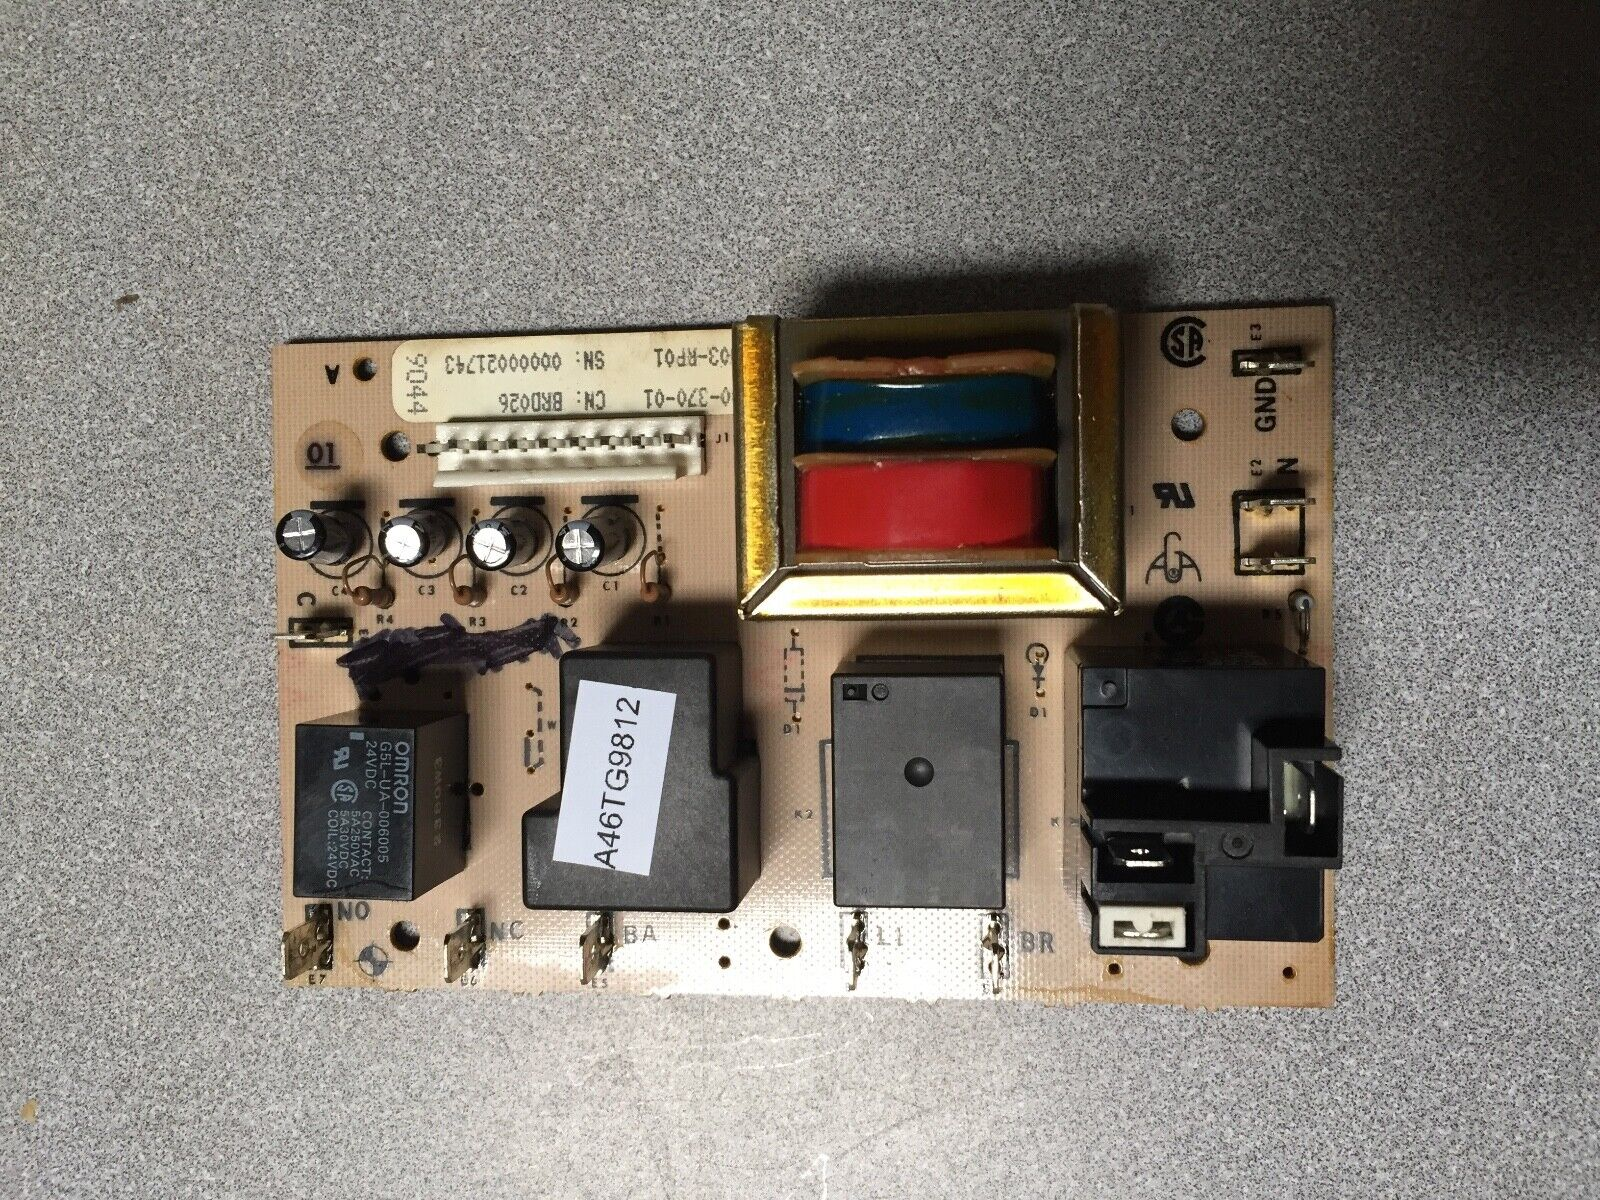 Refurbished Relay Circuit Board - WB27X610 for GE Electric Ranges  - $50.00